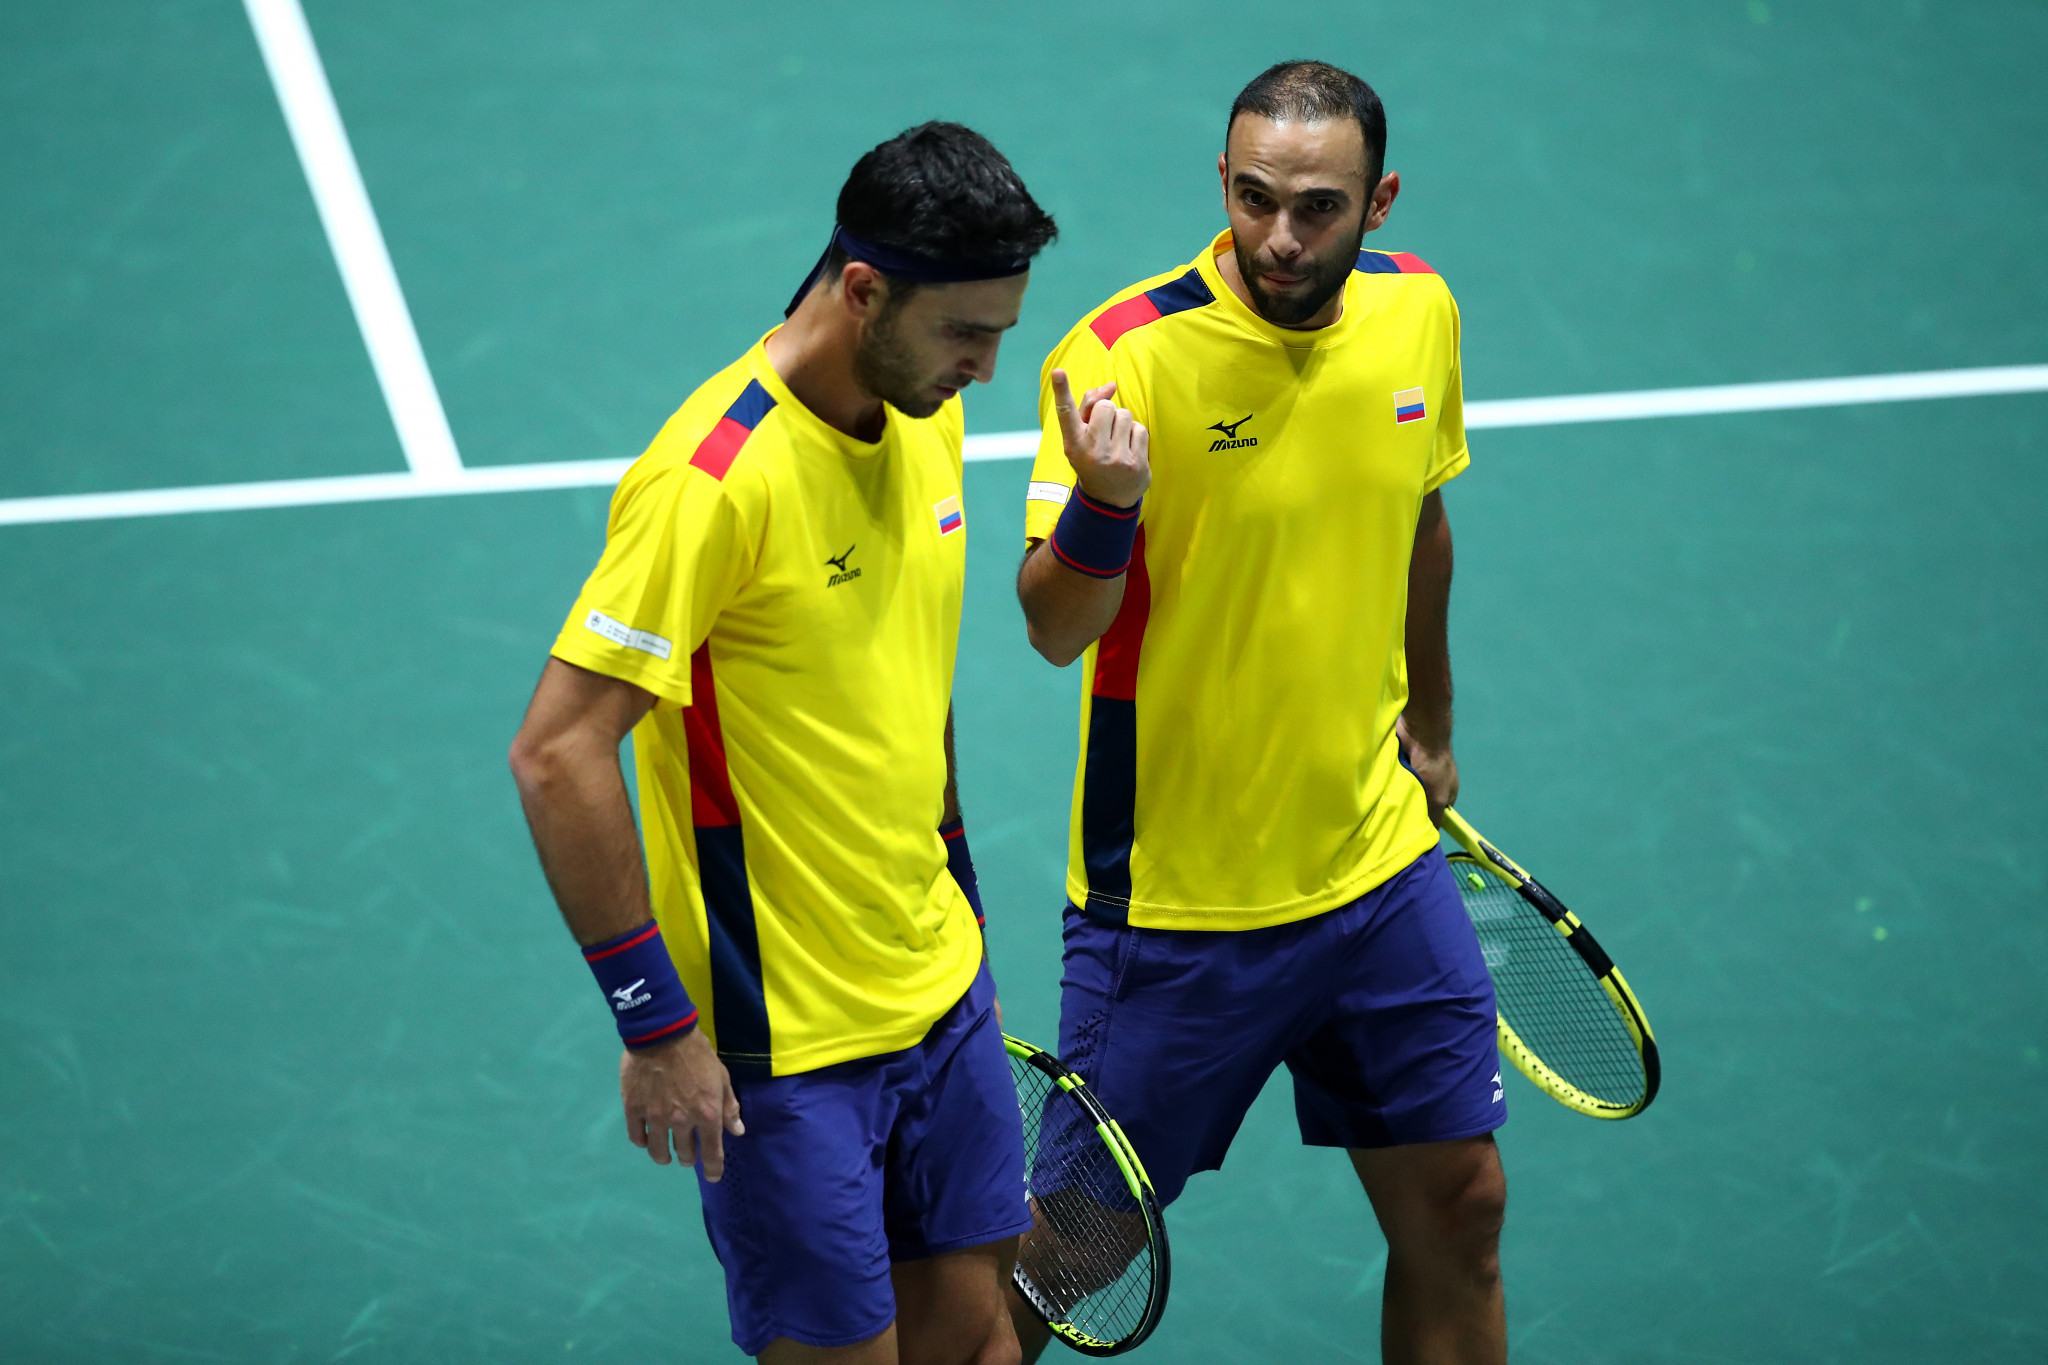 Robert Farah, left, and doubles partner Juan Sebastián Cabal won two Grand Slams in 2019 ©Getty Images